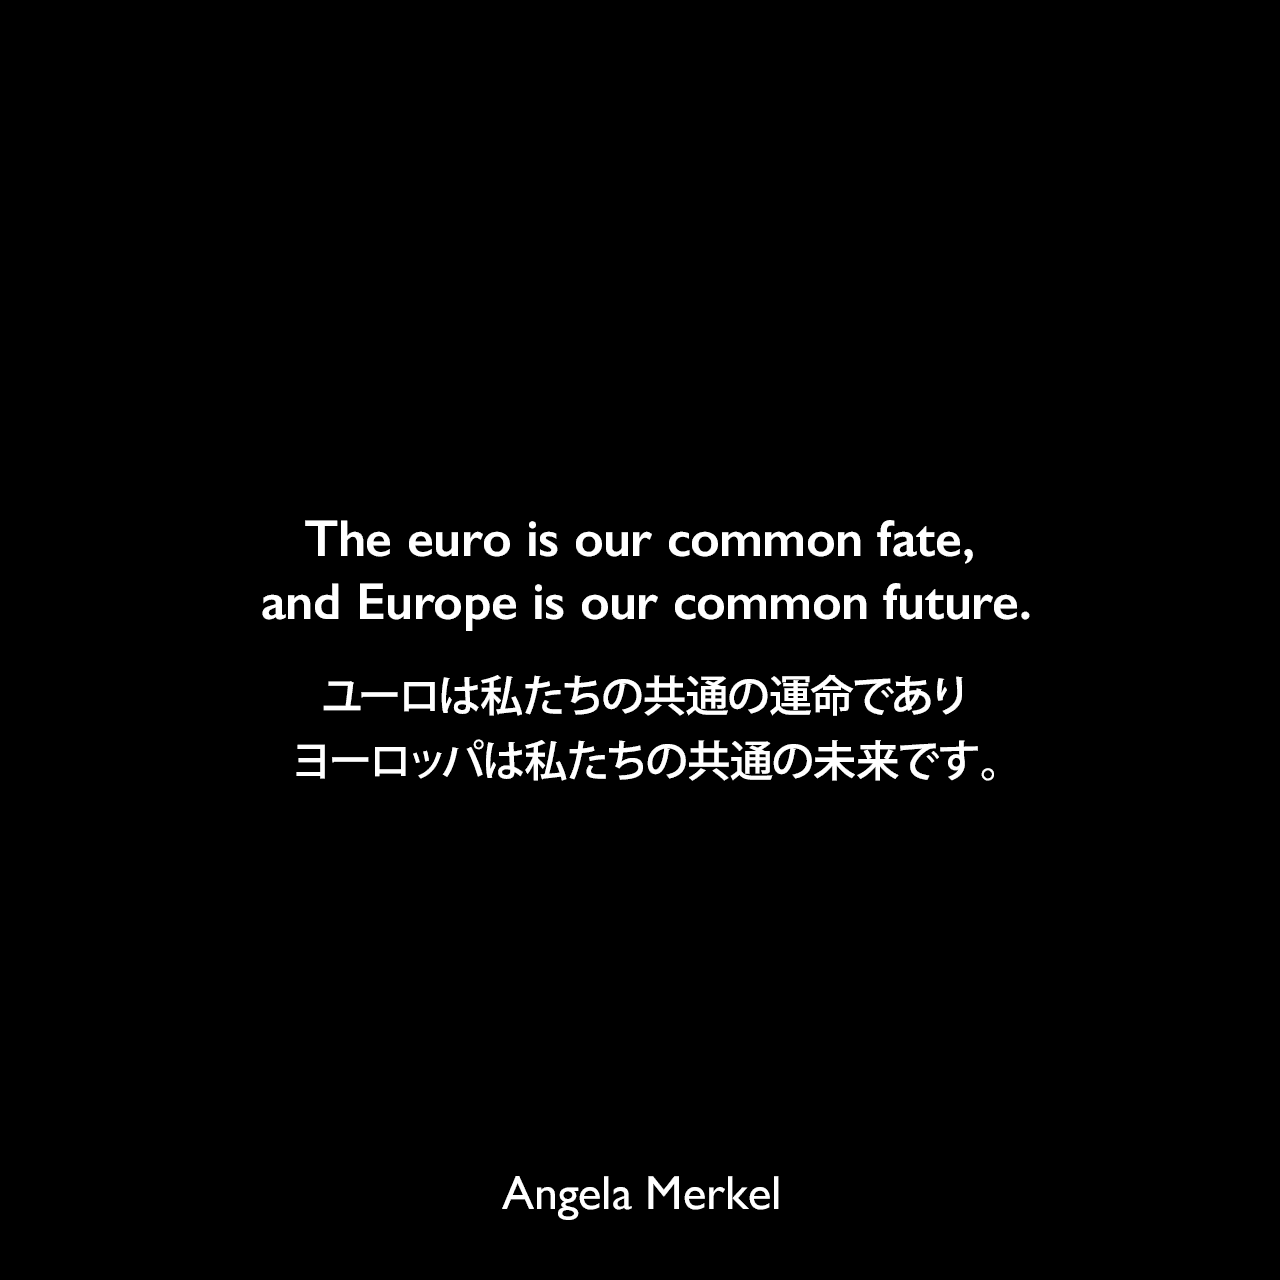 The euro is our common fate, and Europe is our common future.ユーロは私たちの共通の運命であり、ヨーロッパは私たちの共通の未来です。Angela Merkel